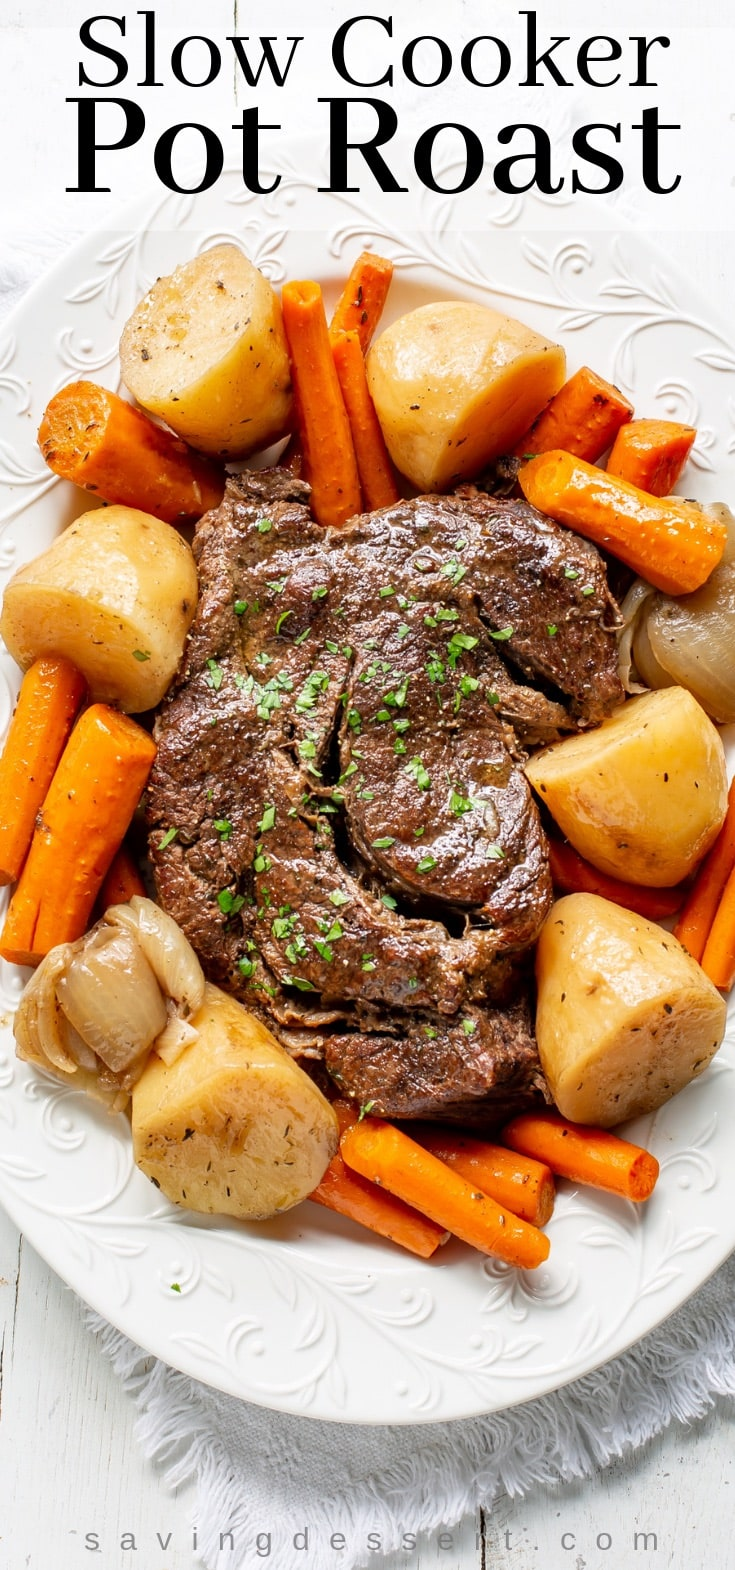 A platter with slow cooker pot roast with potatoes and carrots